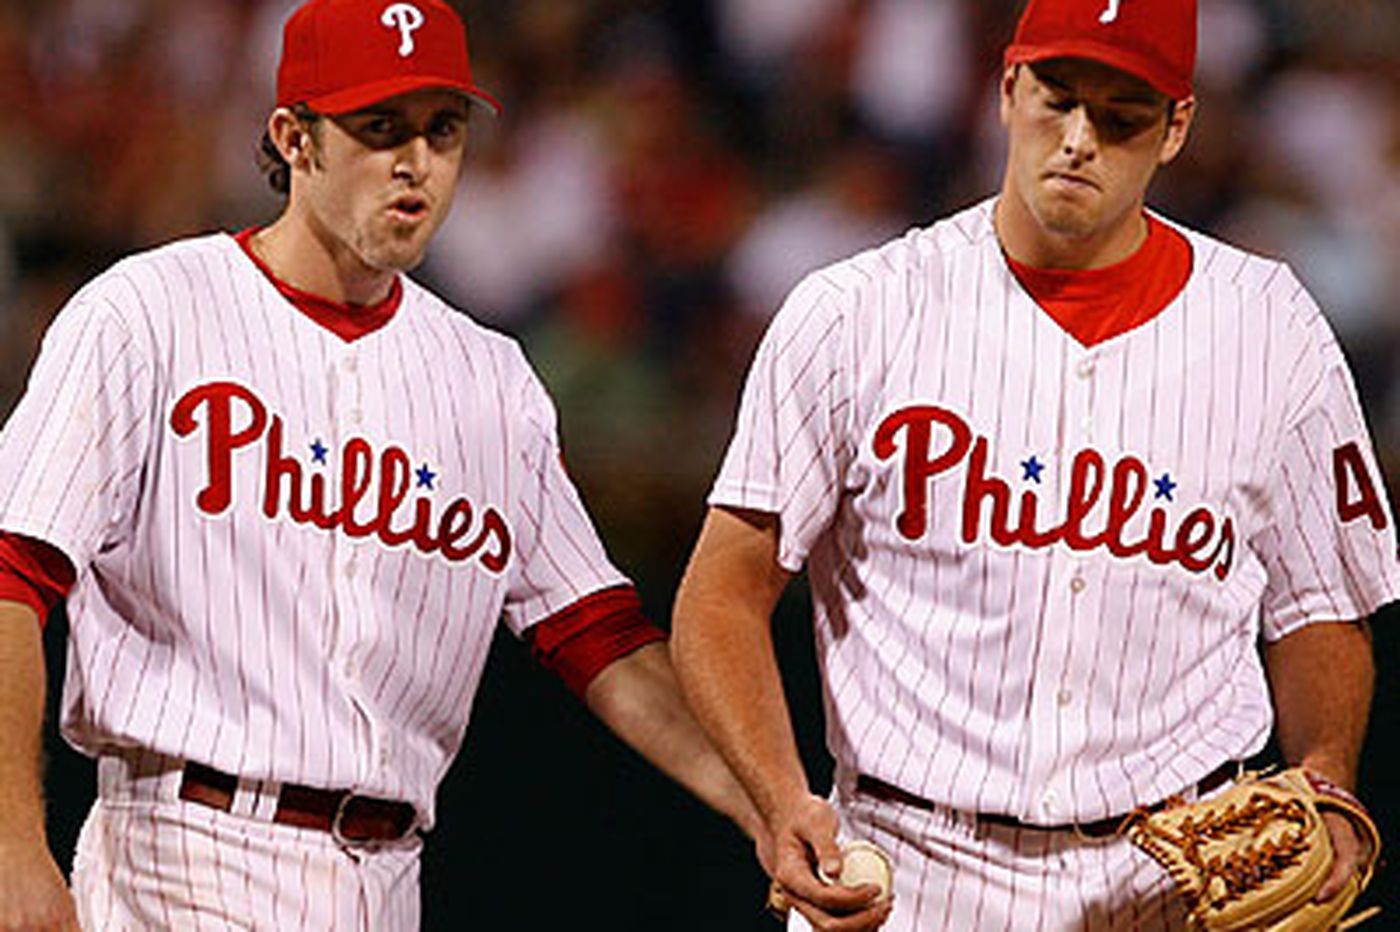 Mathieson tries epic comeback with the Phils